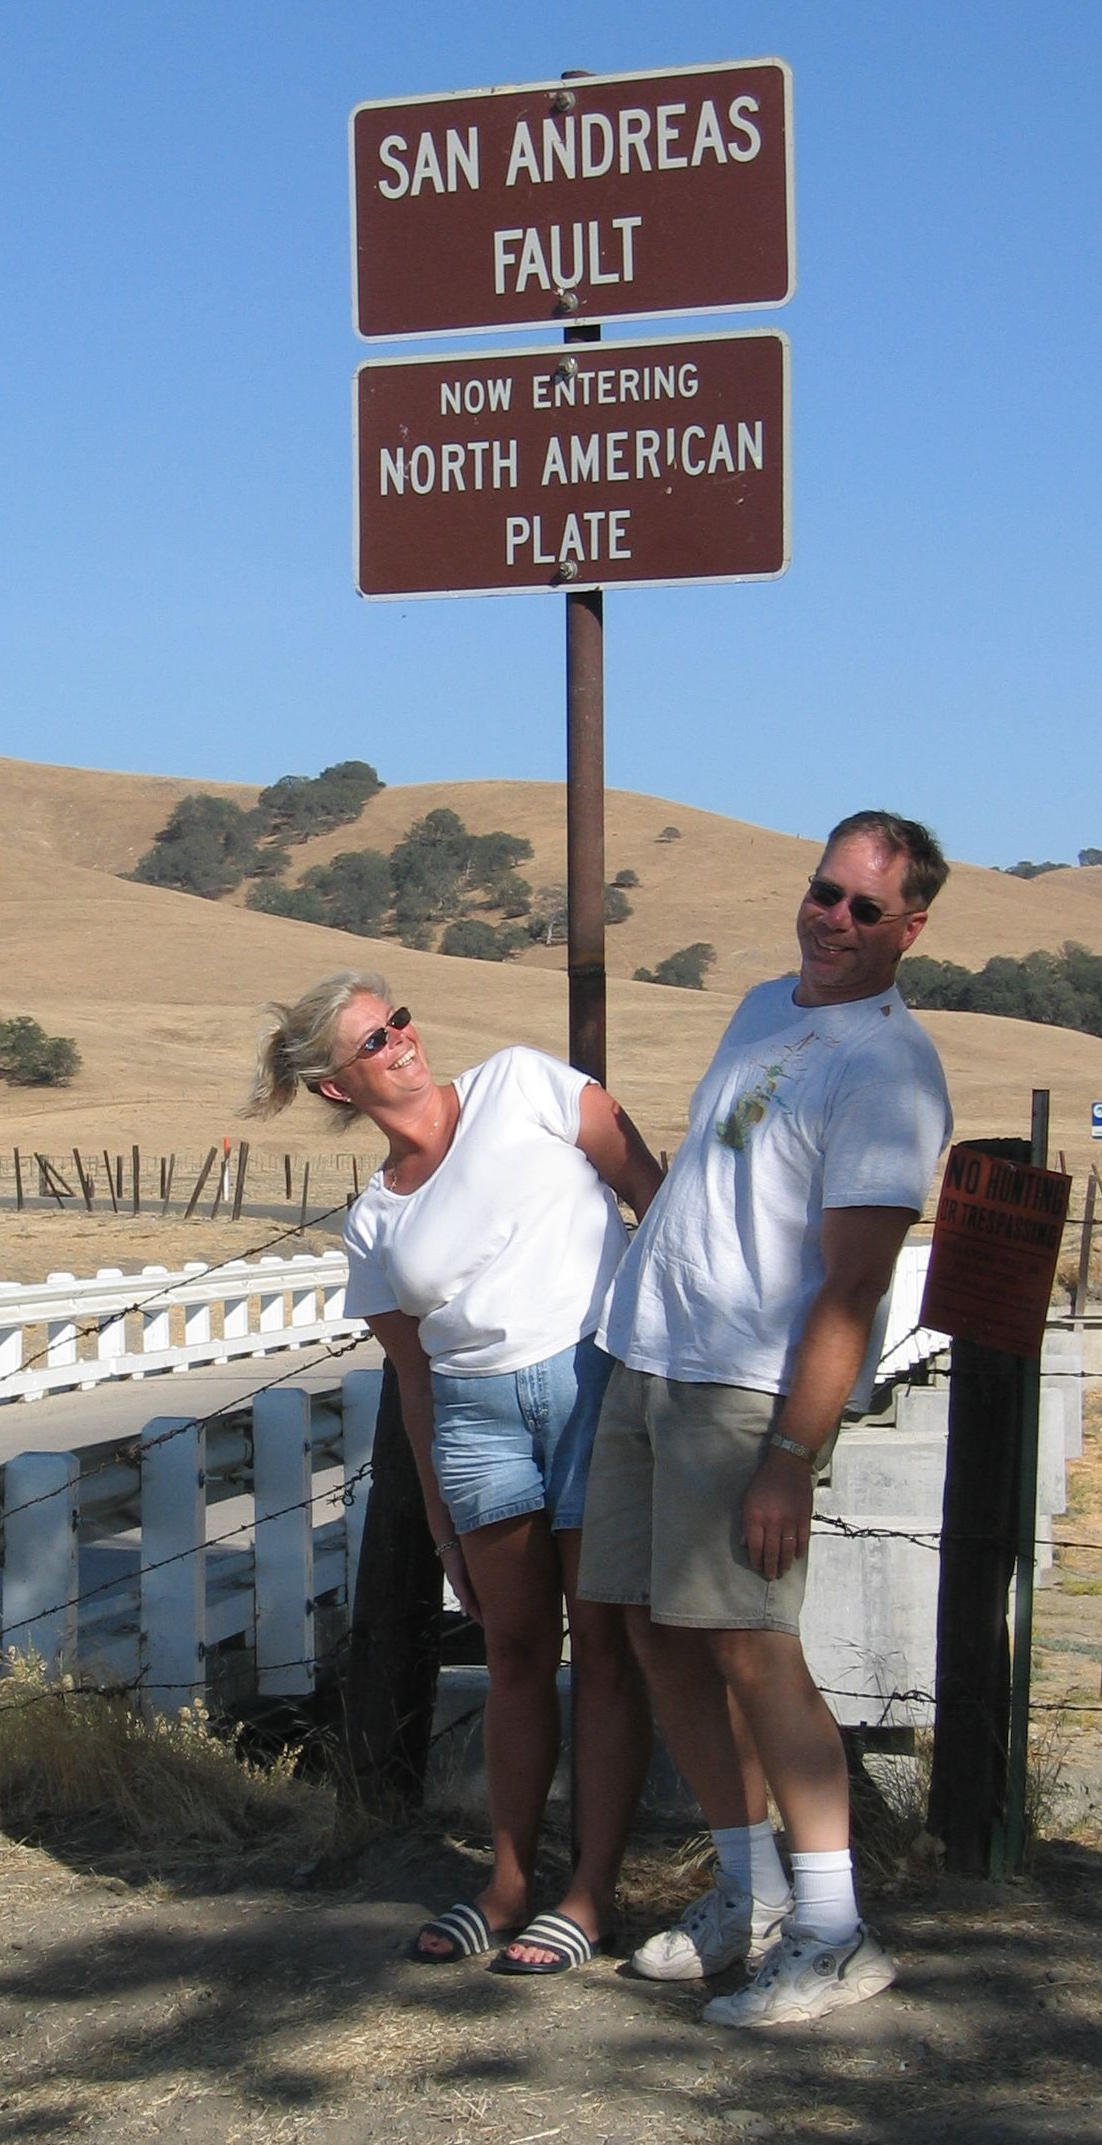 Visit the San Andreas Fault